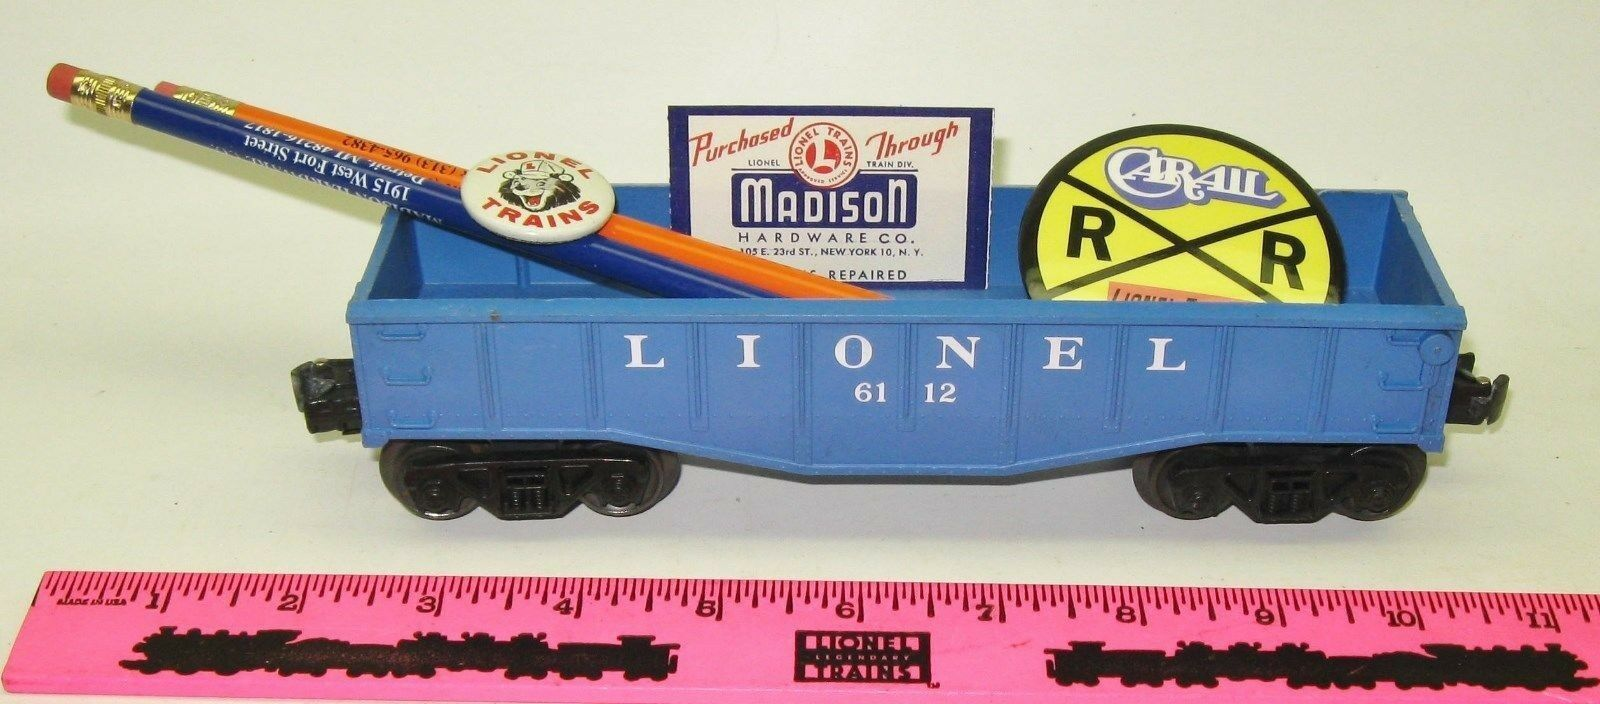 Lionel New 6112 Lionel gondola with pins & pencil made by Madison